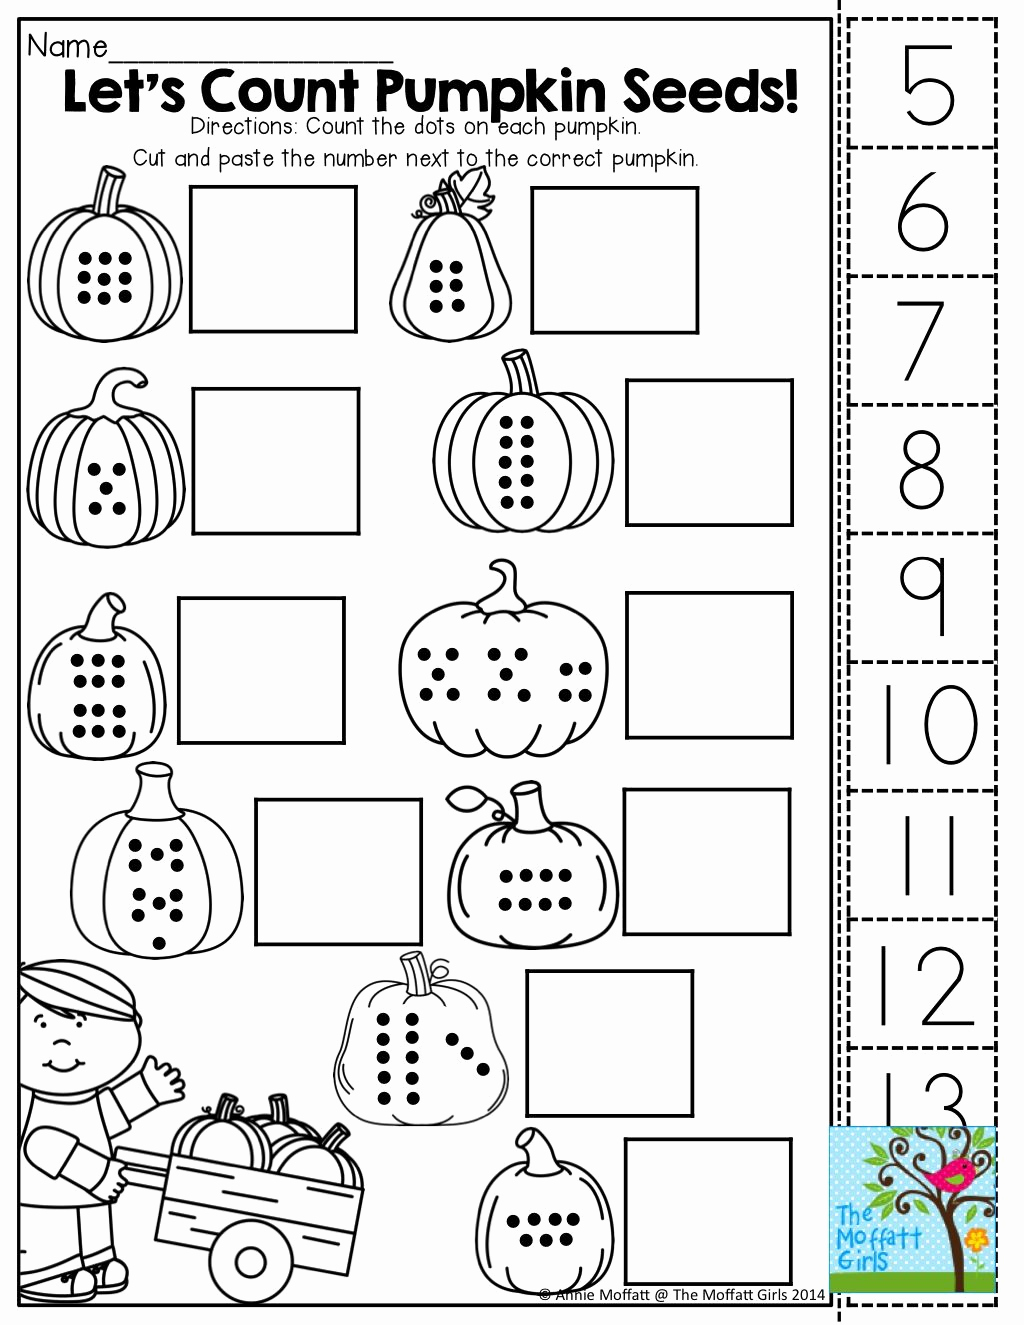 Counting Cut and Paste Worksheets Awesome Count Cut and Paste tons Of Fun Printables